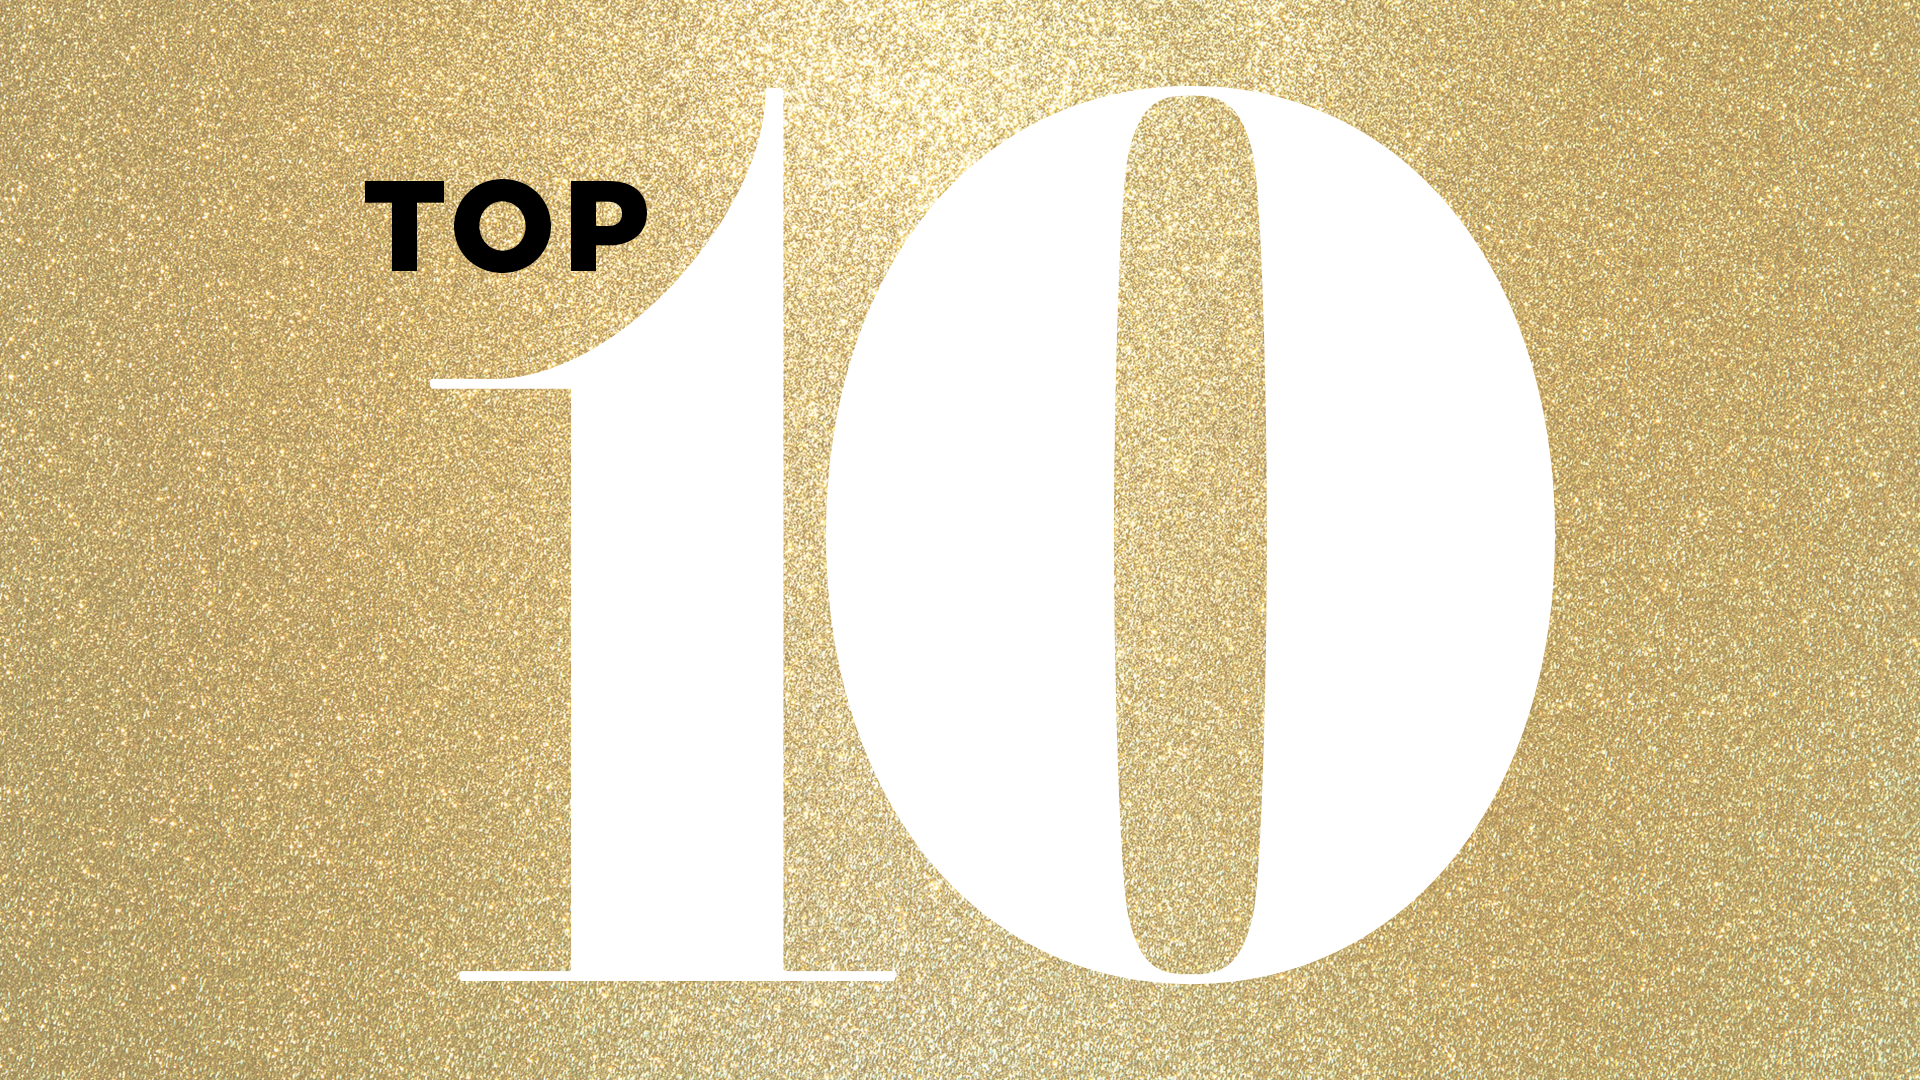 Top 10 Articles of 2017 - Training Industry